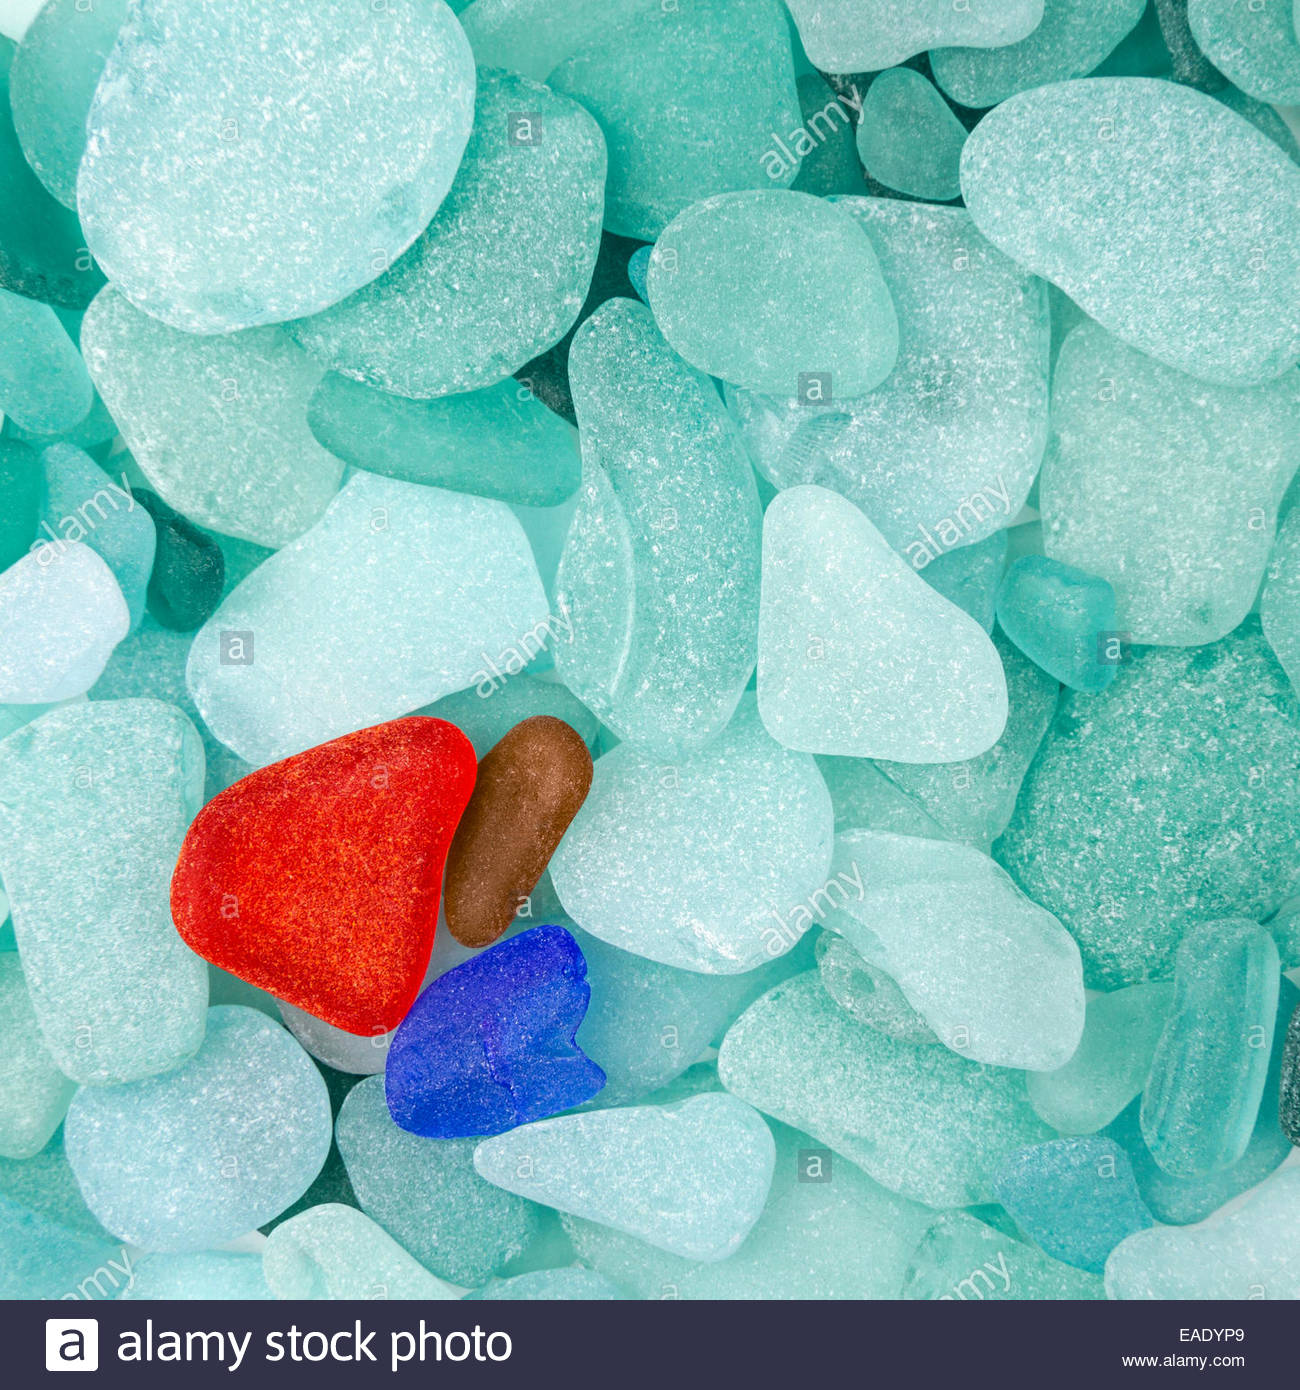 Three different sea glasses isolated on green sea glass background - Stock Image